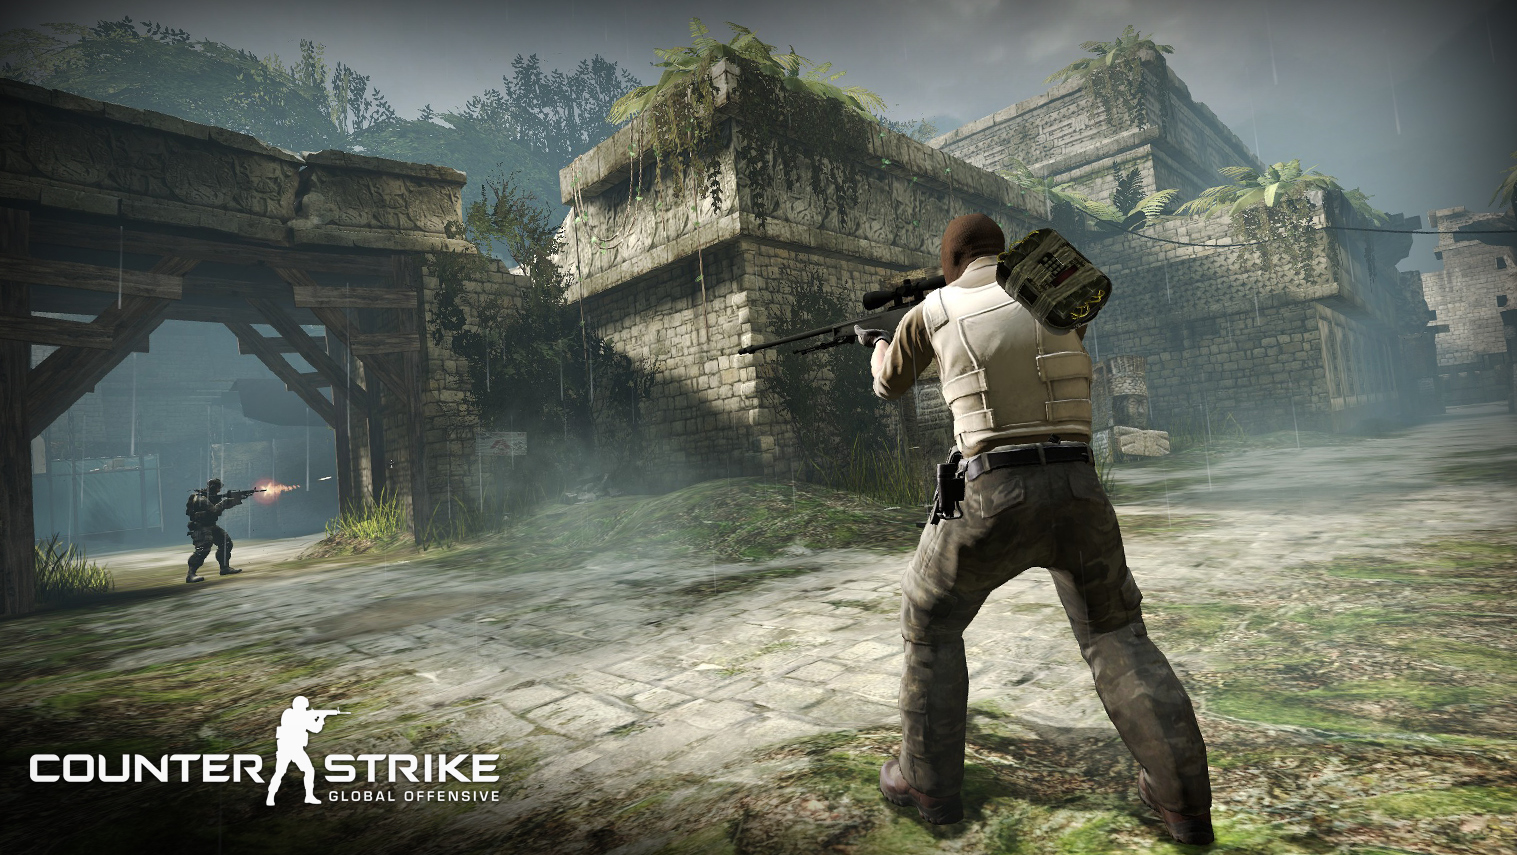 ve played Counter-Strike: Global Offensive and can now say it